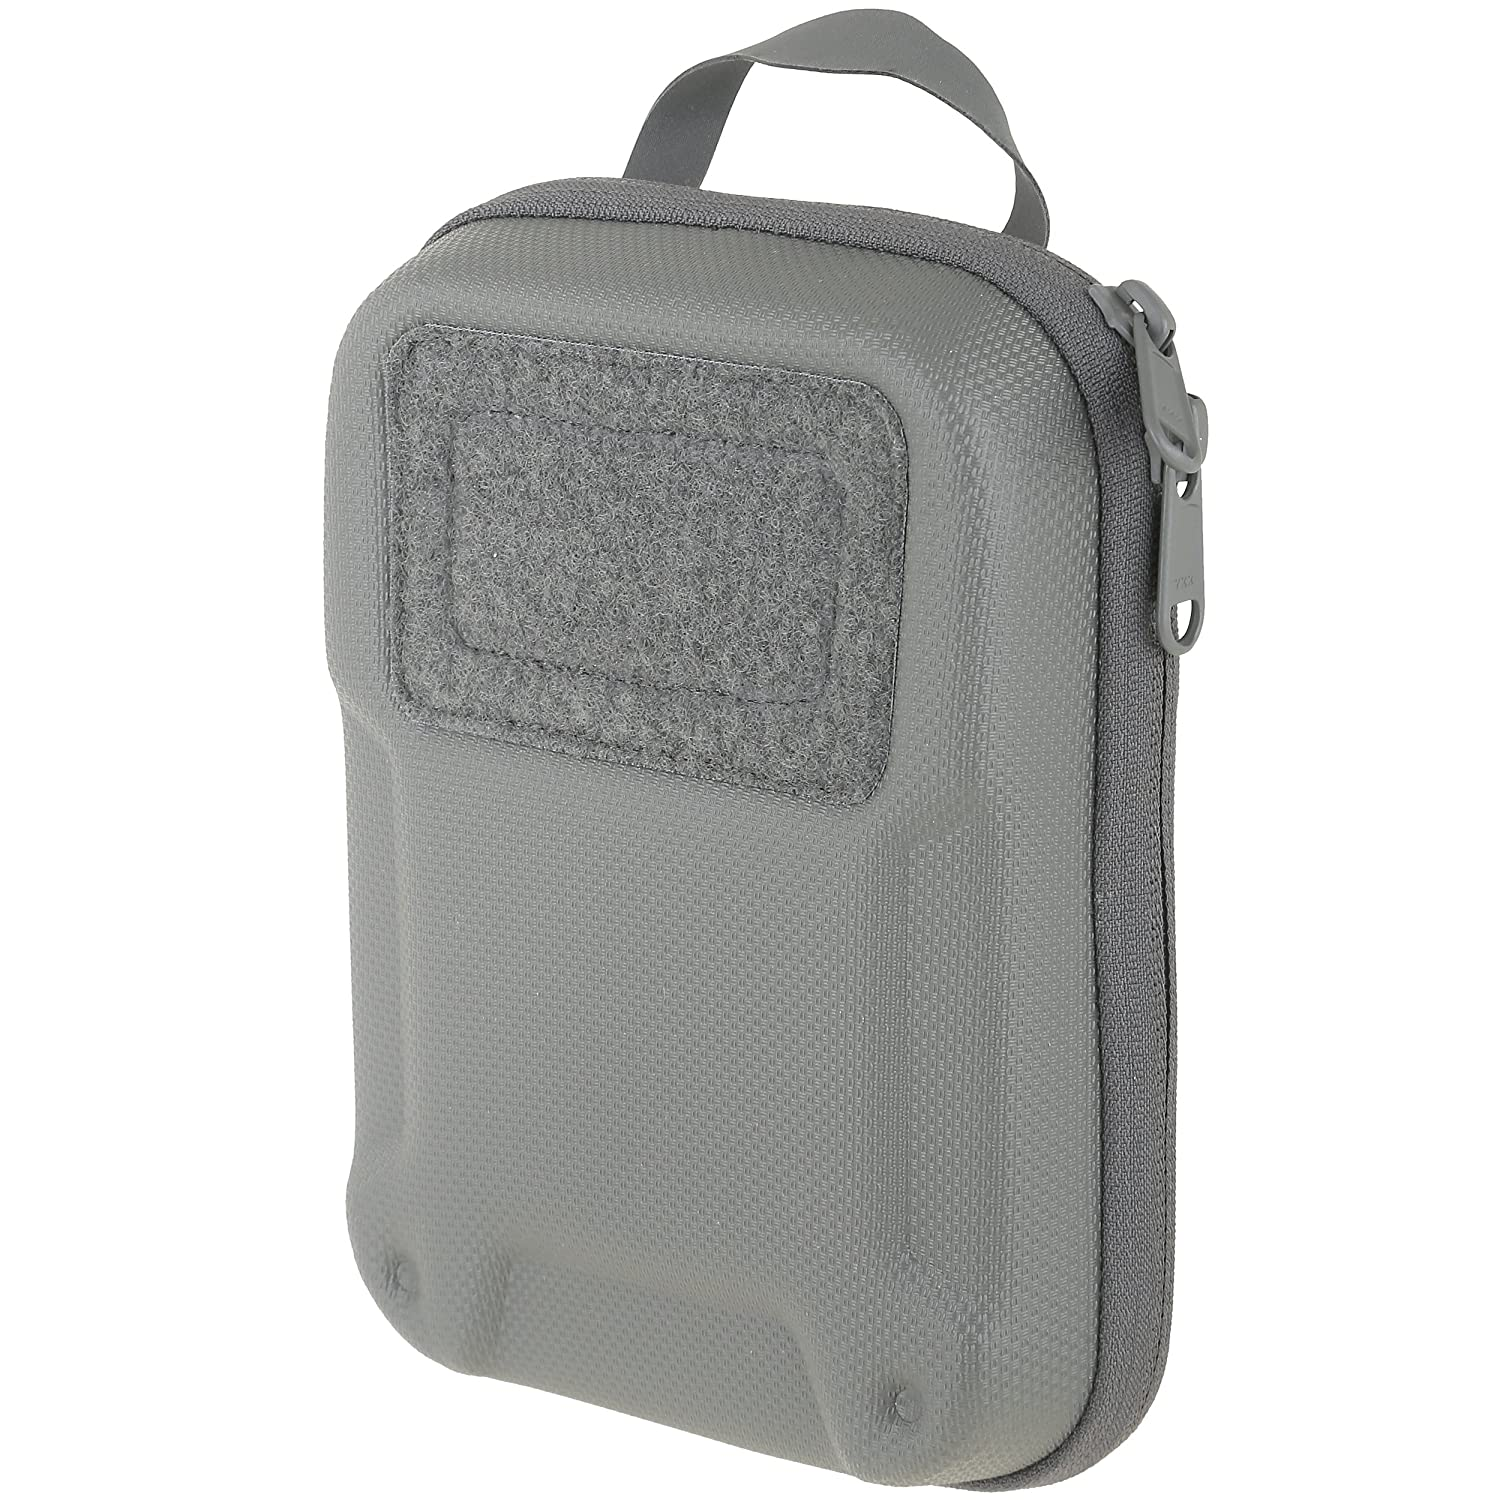 Maxpedition AGR Advanced Gear Research Everyday Organizer, grau